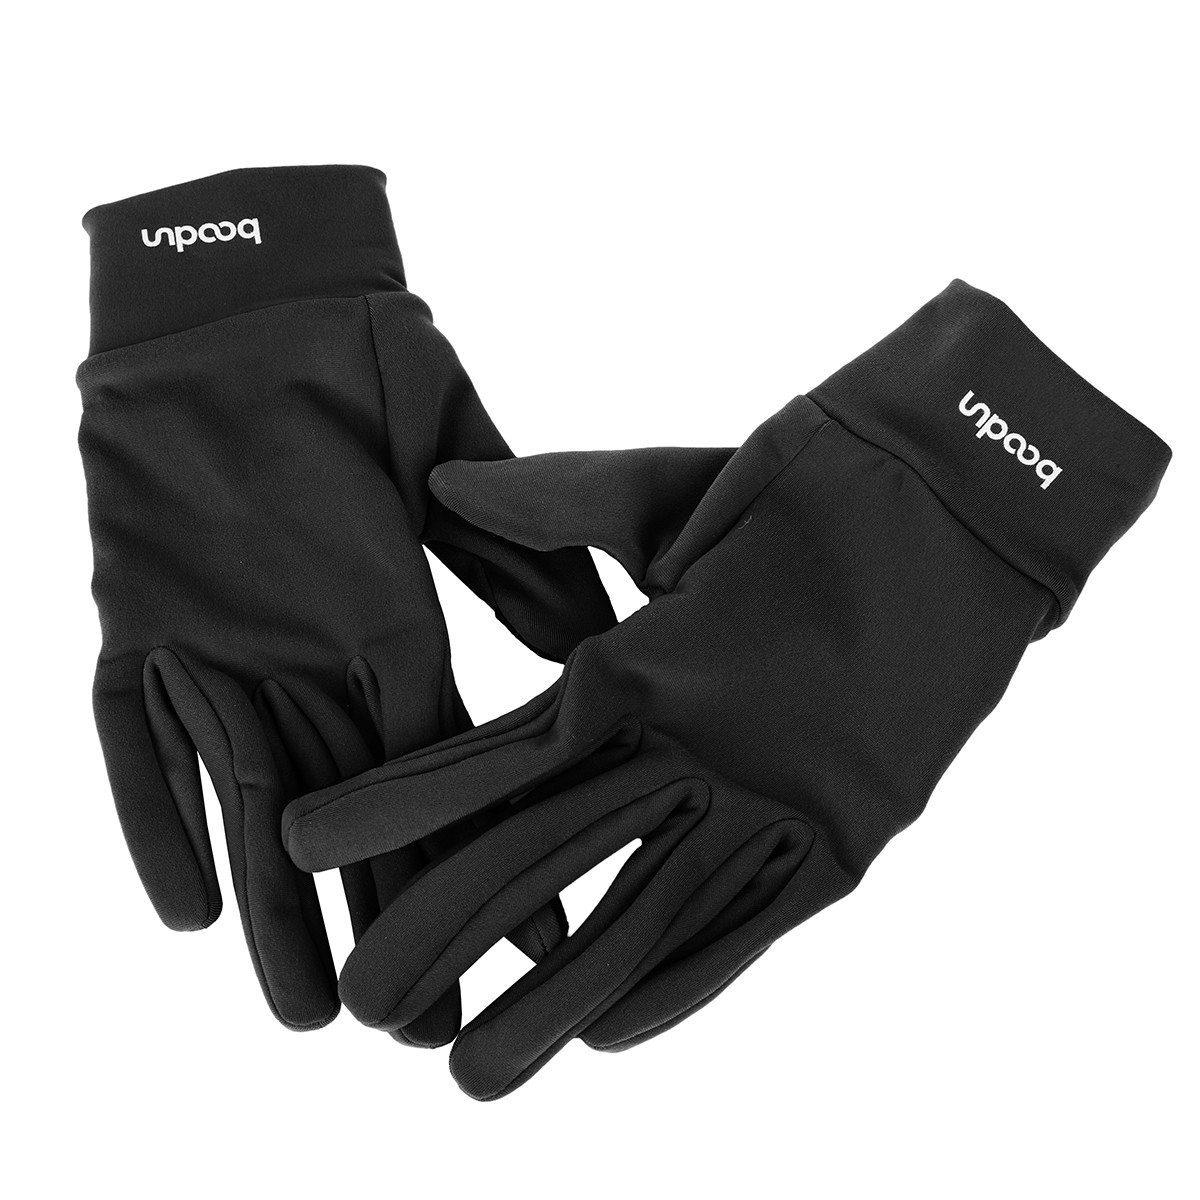 BOODUN Screen Touch Glove Winter Outdoor Sports Motorcycle Bicycle Riding